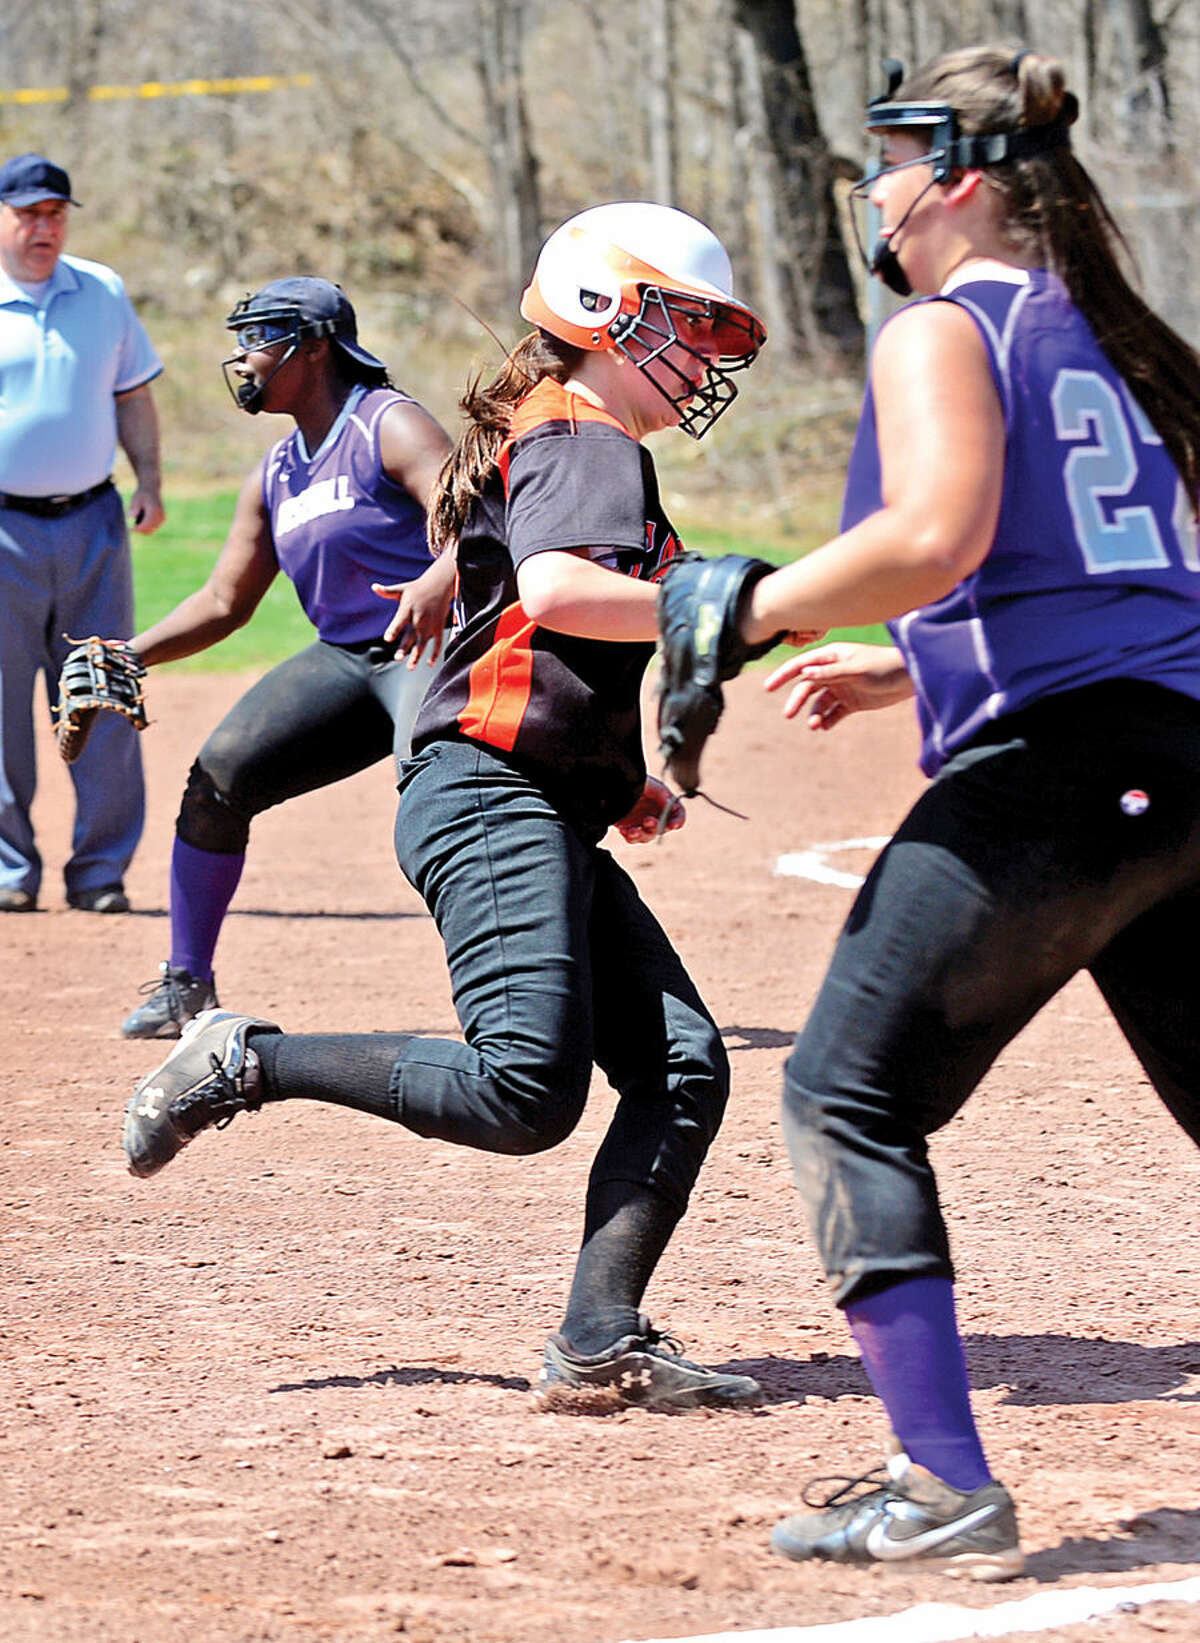 Hour photo / Erik Trautmann Stamford's Allie Buzzeo rounds third for a in the park home run during their softball game against Westhill High School Saturday.